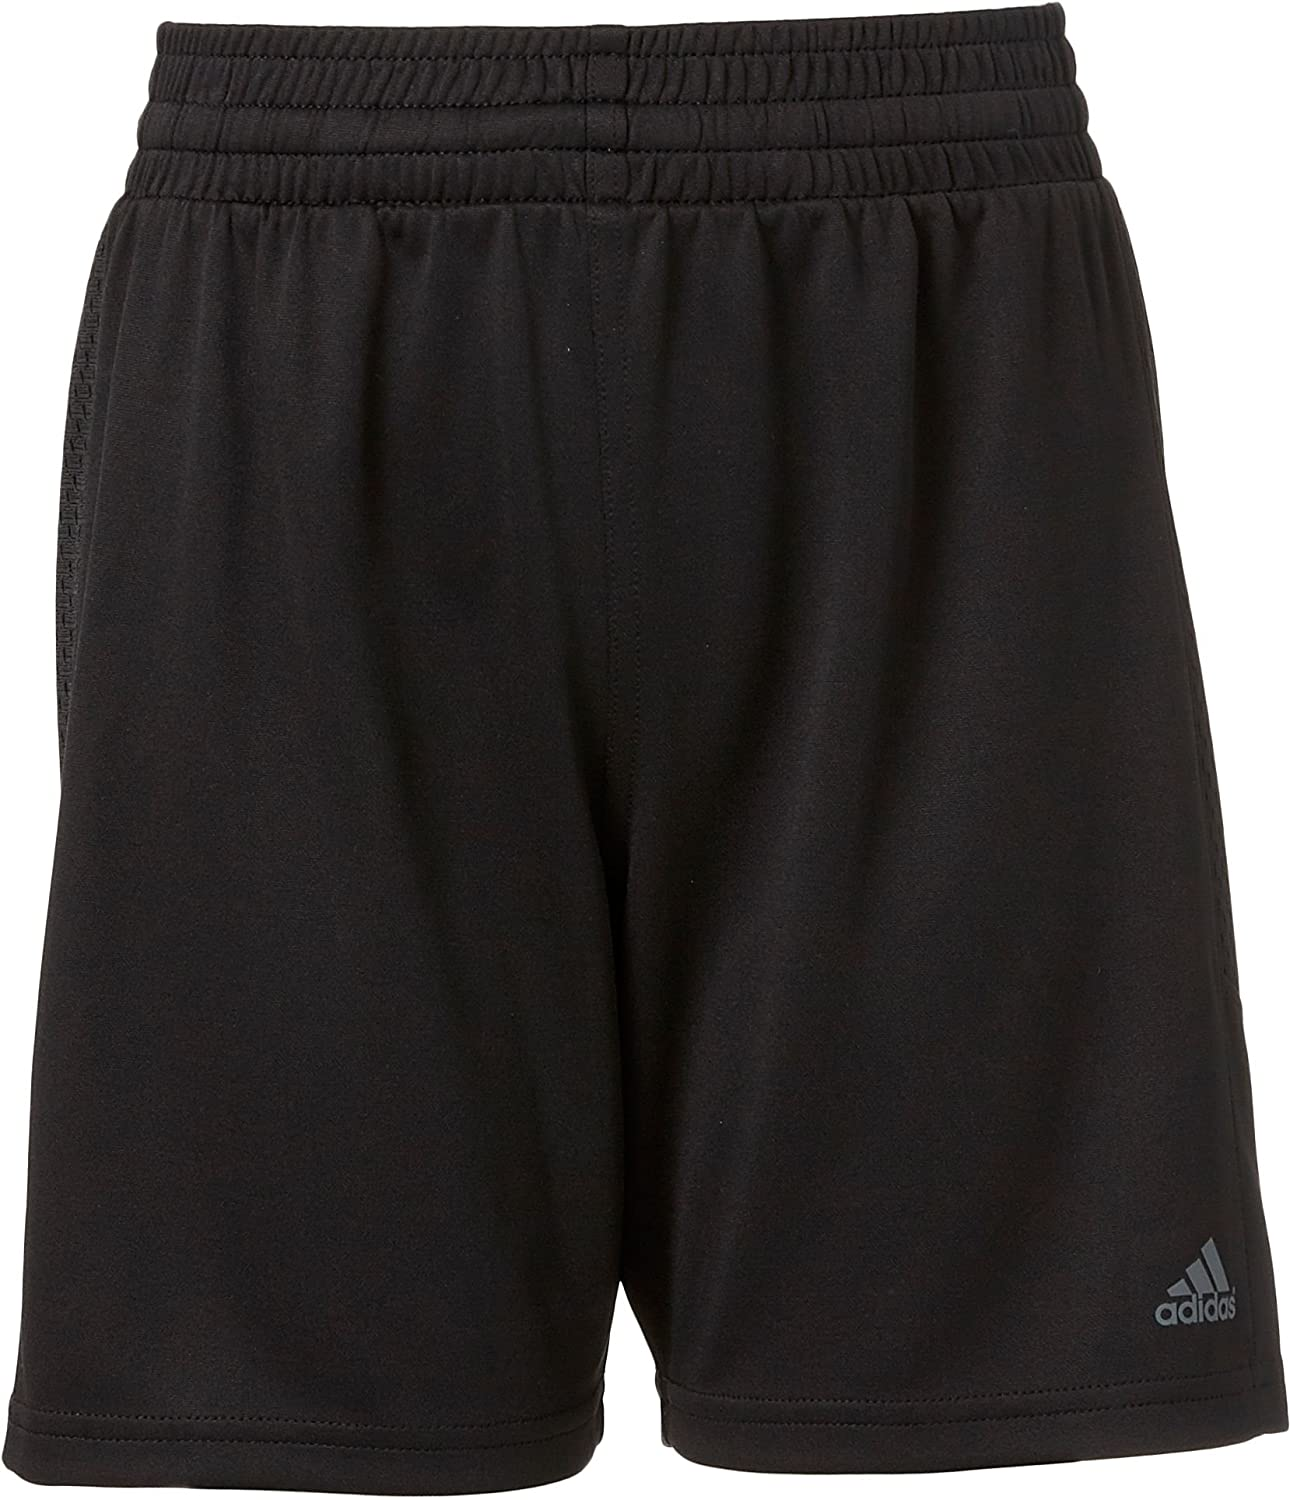 Adidas Youth Flagge Fußball Shorts